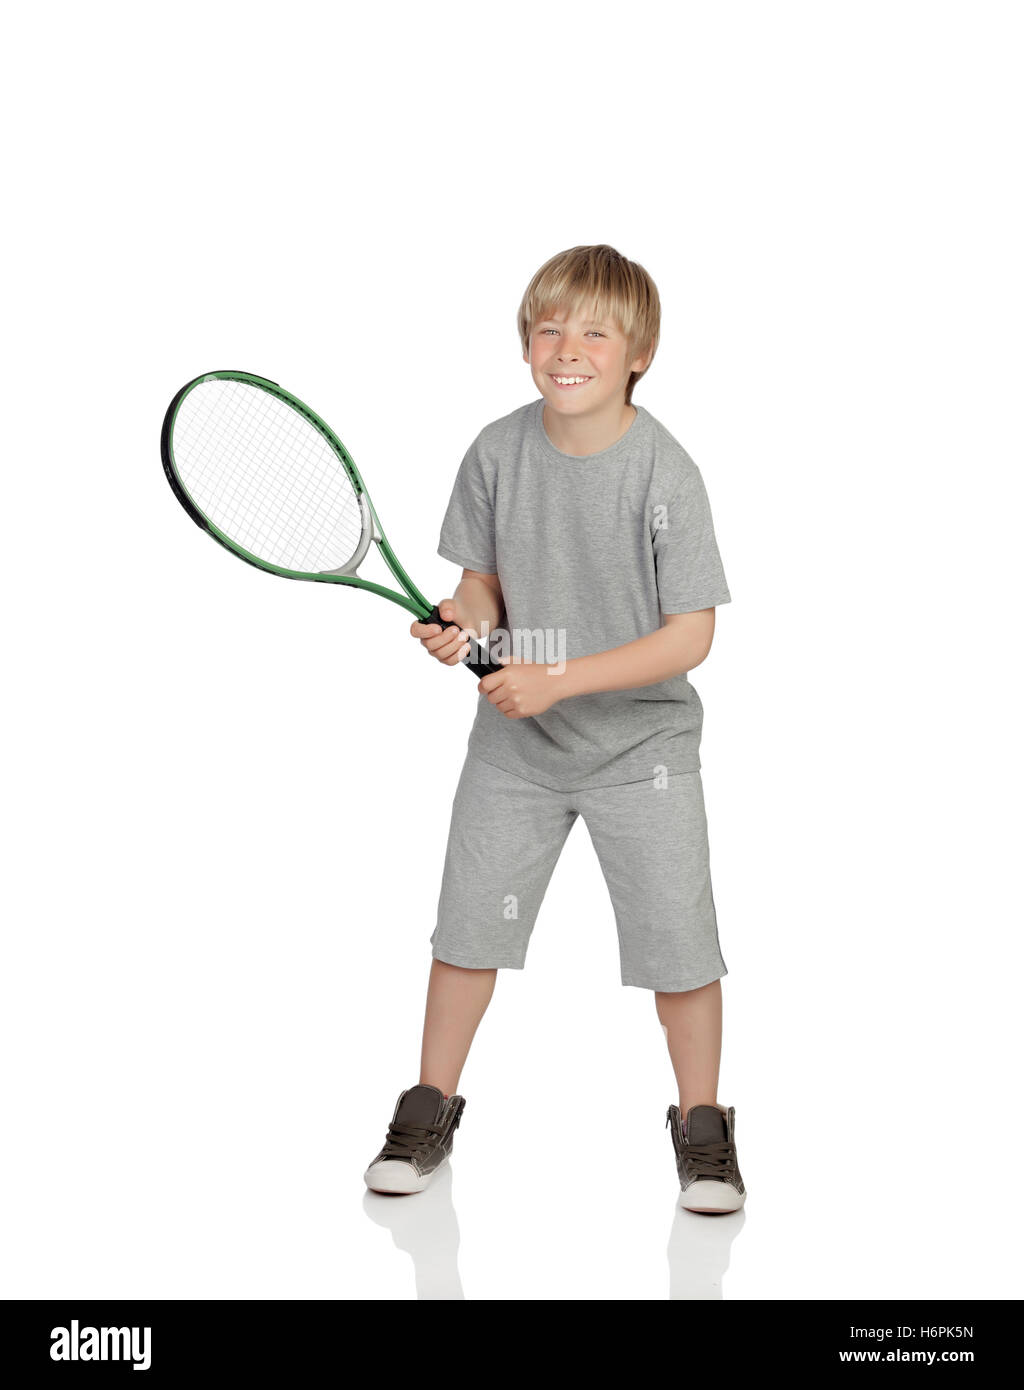 Preteen playing tennis holding racket isolated on white background - Stock Image